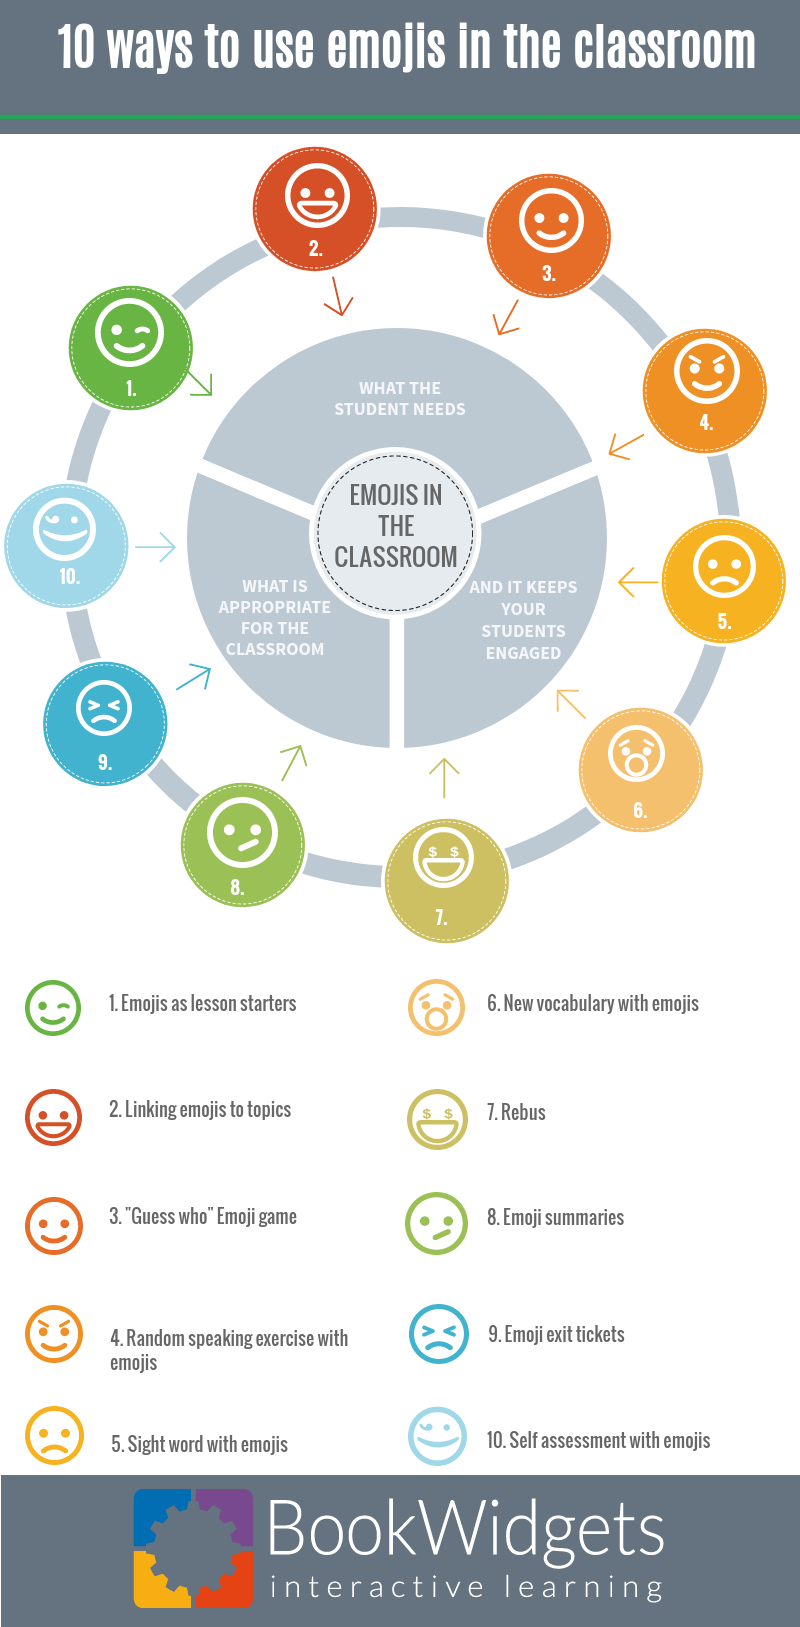 10 Ways to use emojis in the classroom